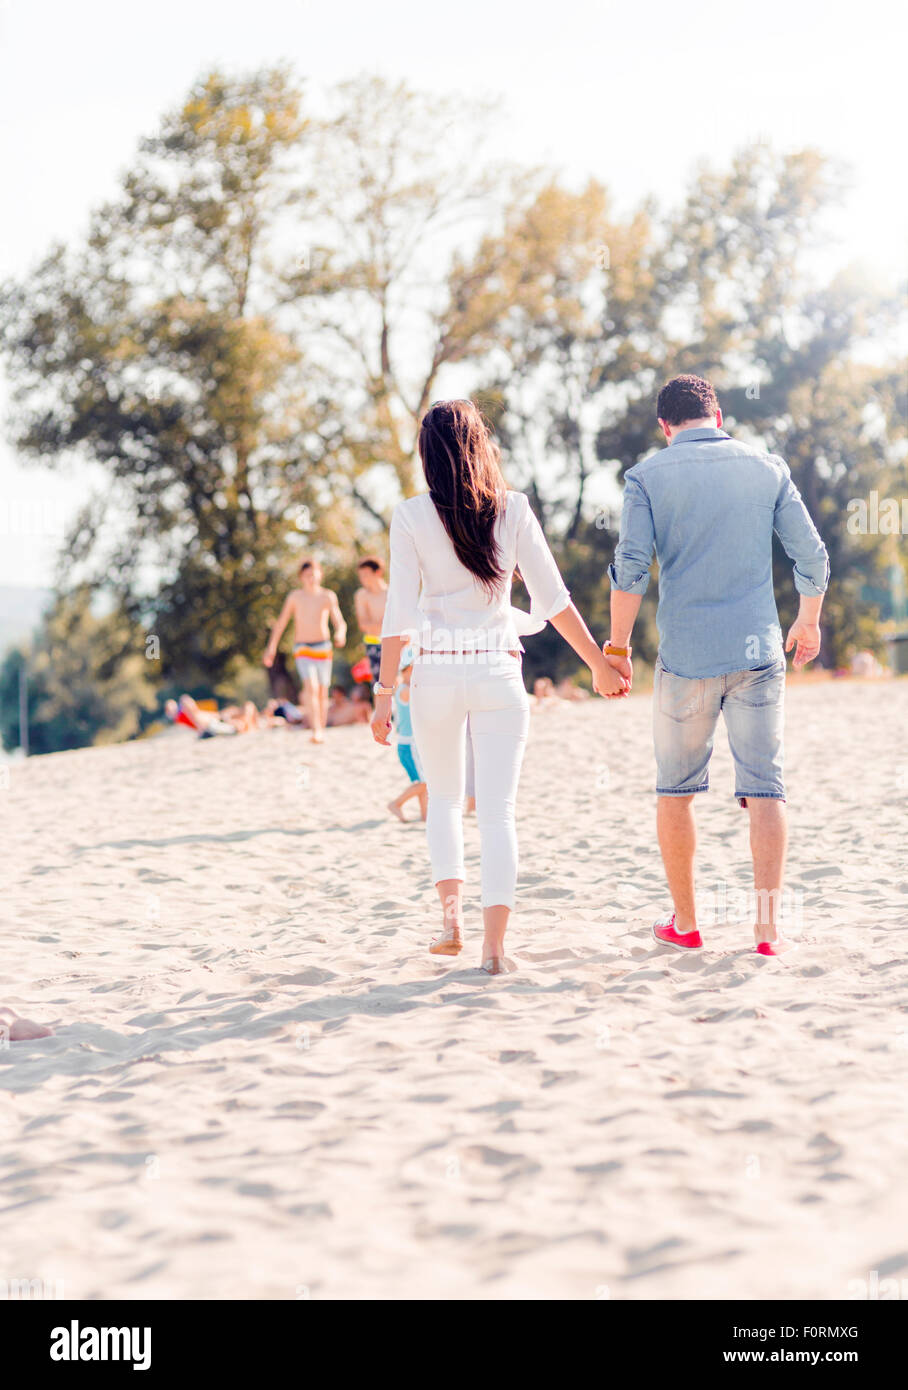 Couple holding hands and walking on a sandy beach Photo Stock